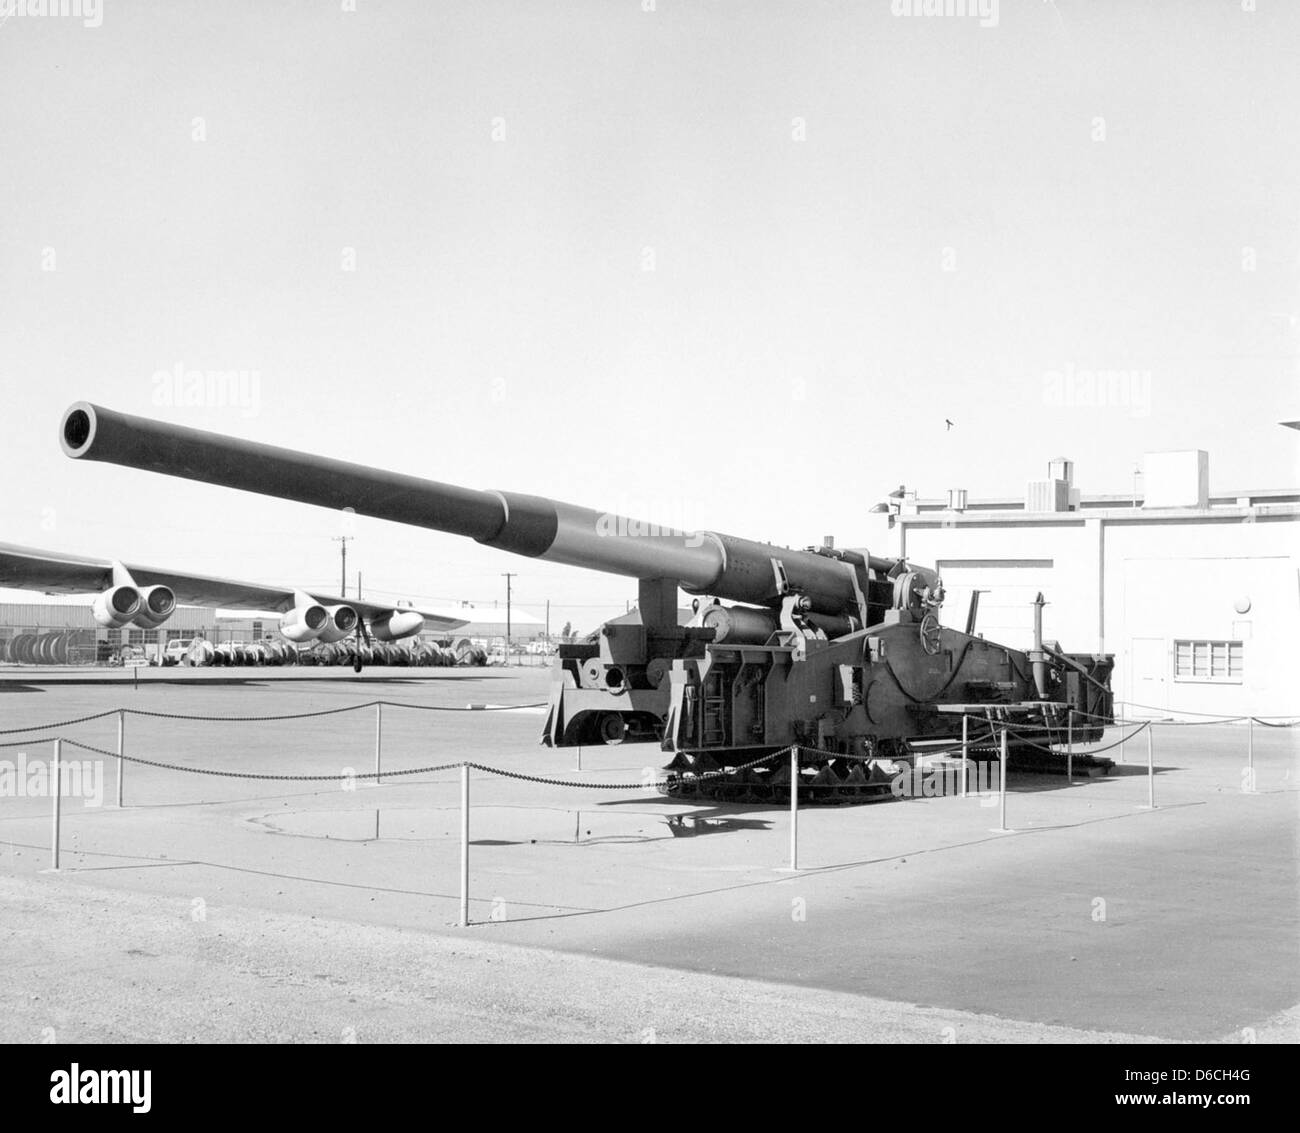 280 mm AFAP cannon on display Photo coutesy of DTRIAC Ar2 Stock Photo